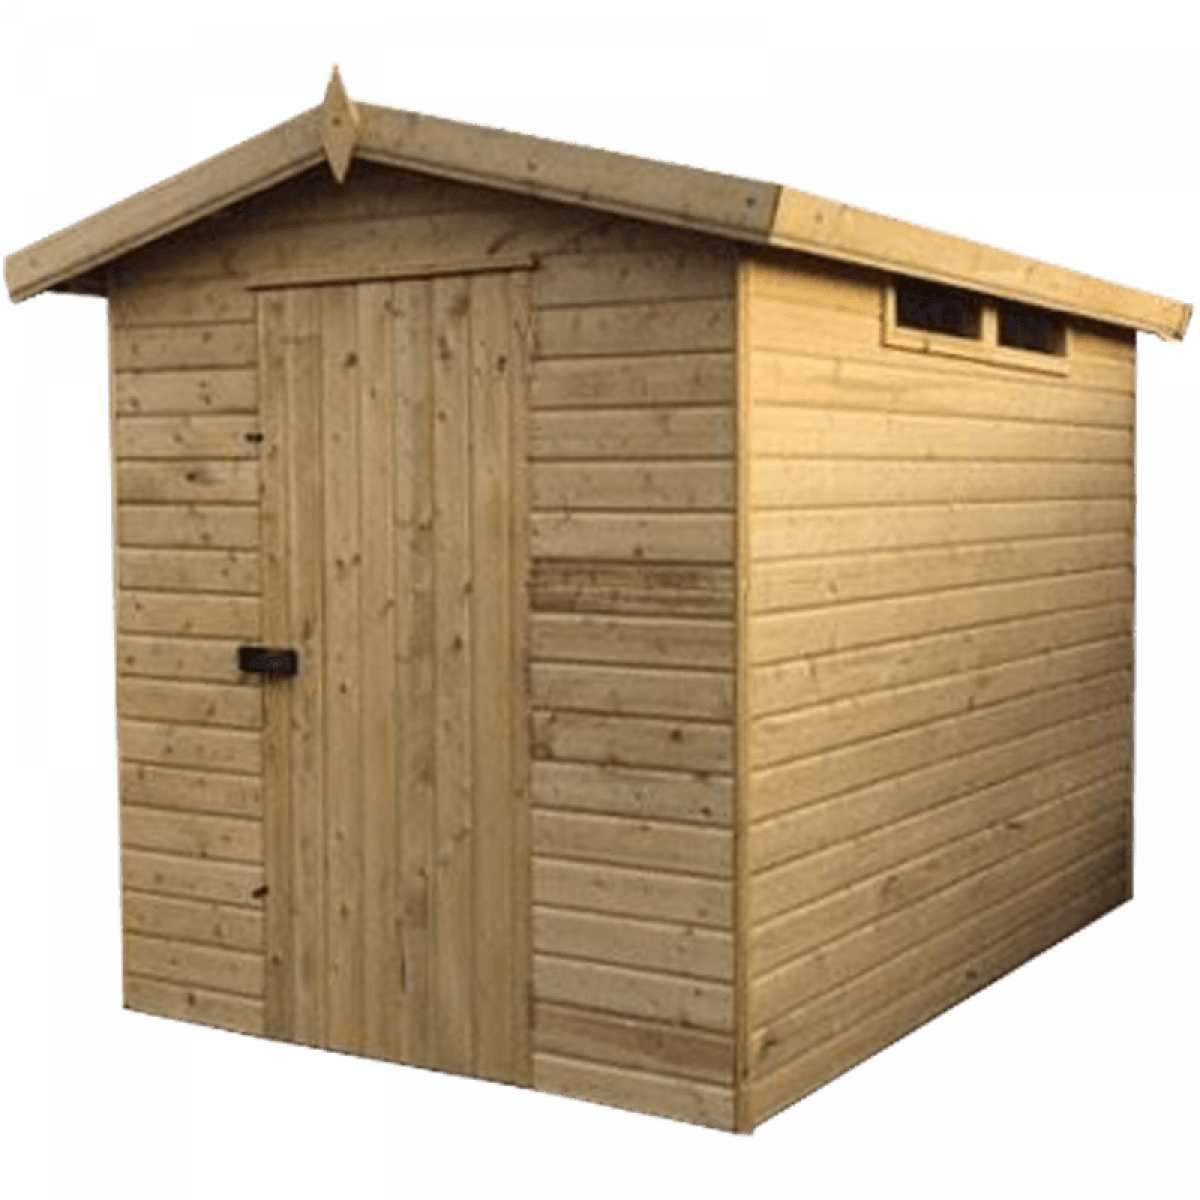 apex shed Image by Websters Timber